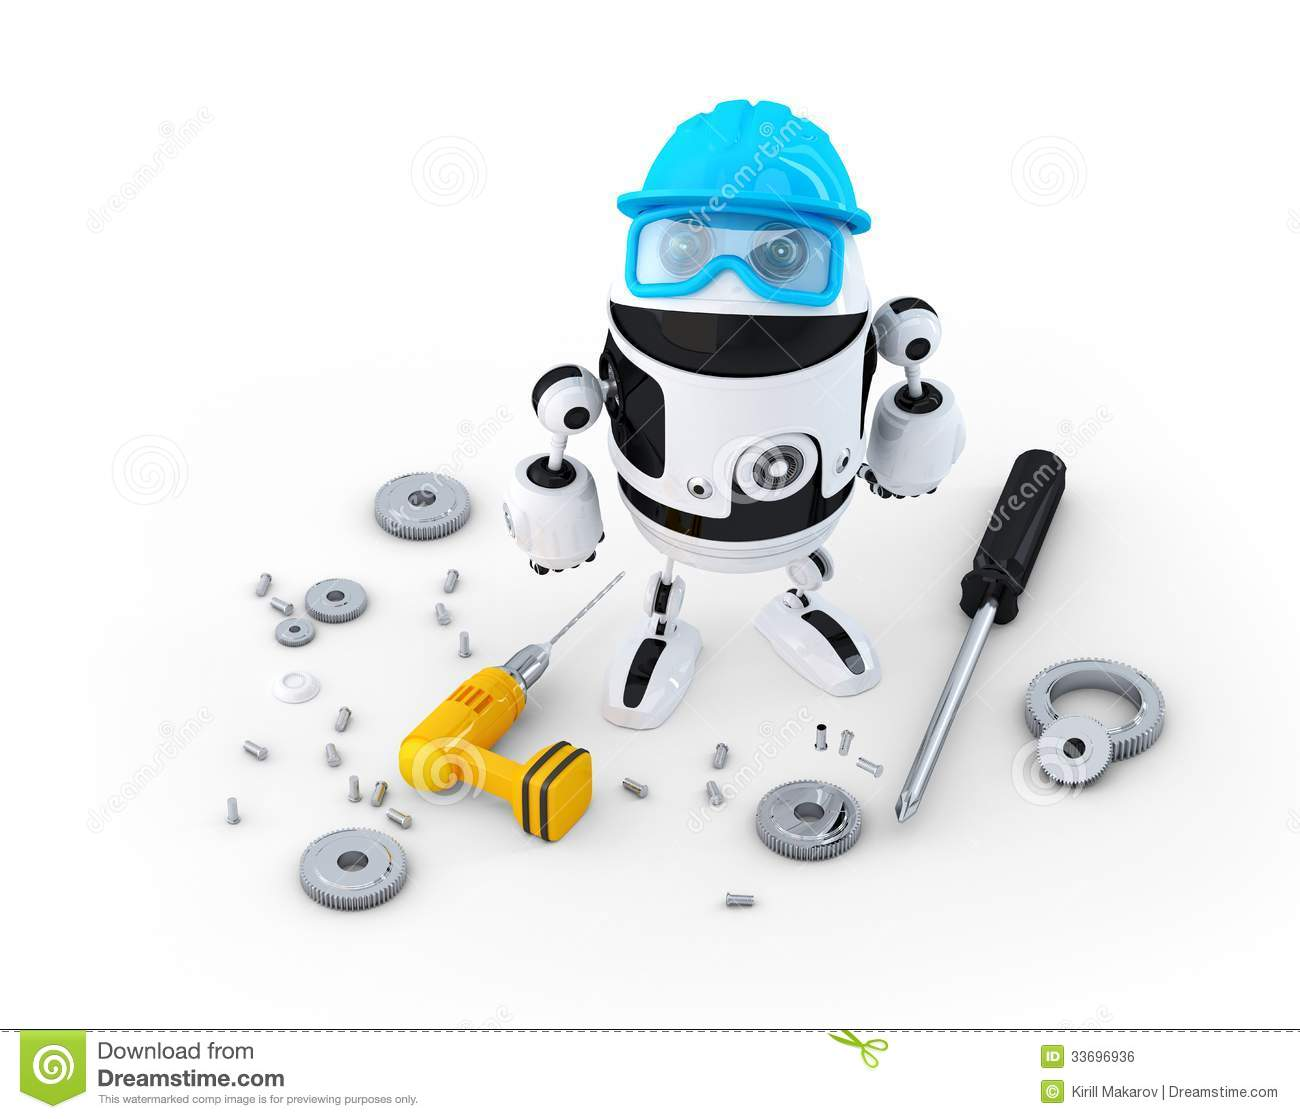 Construction Technology Tools : Robot construction worker with various tools technology